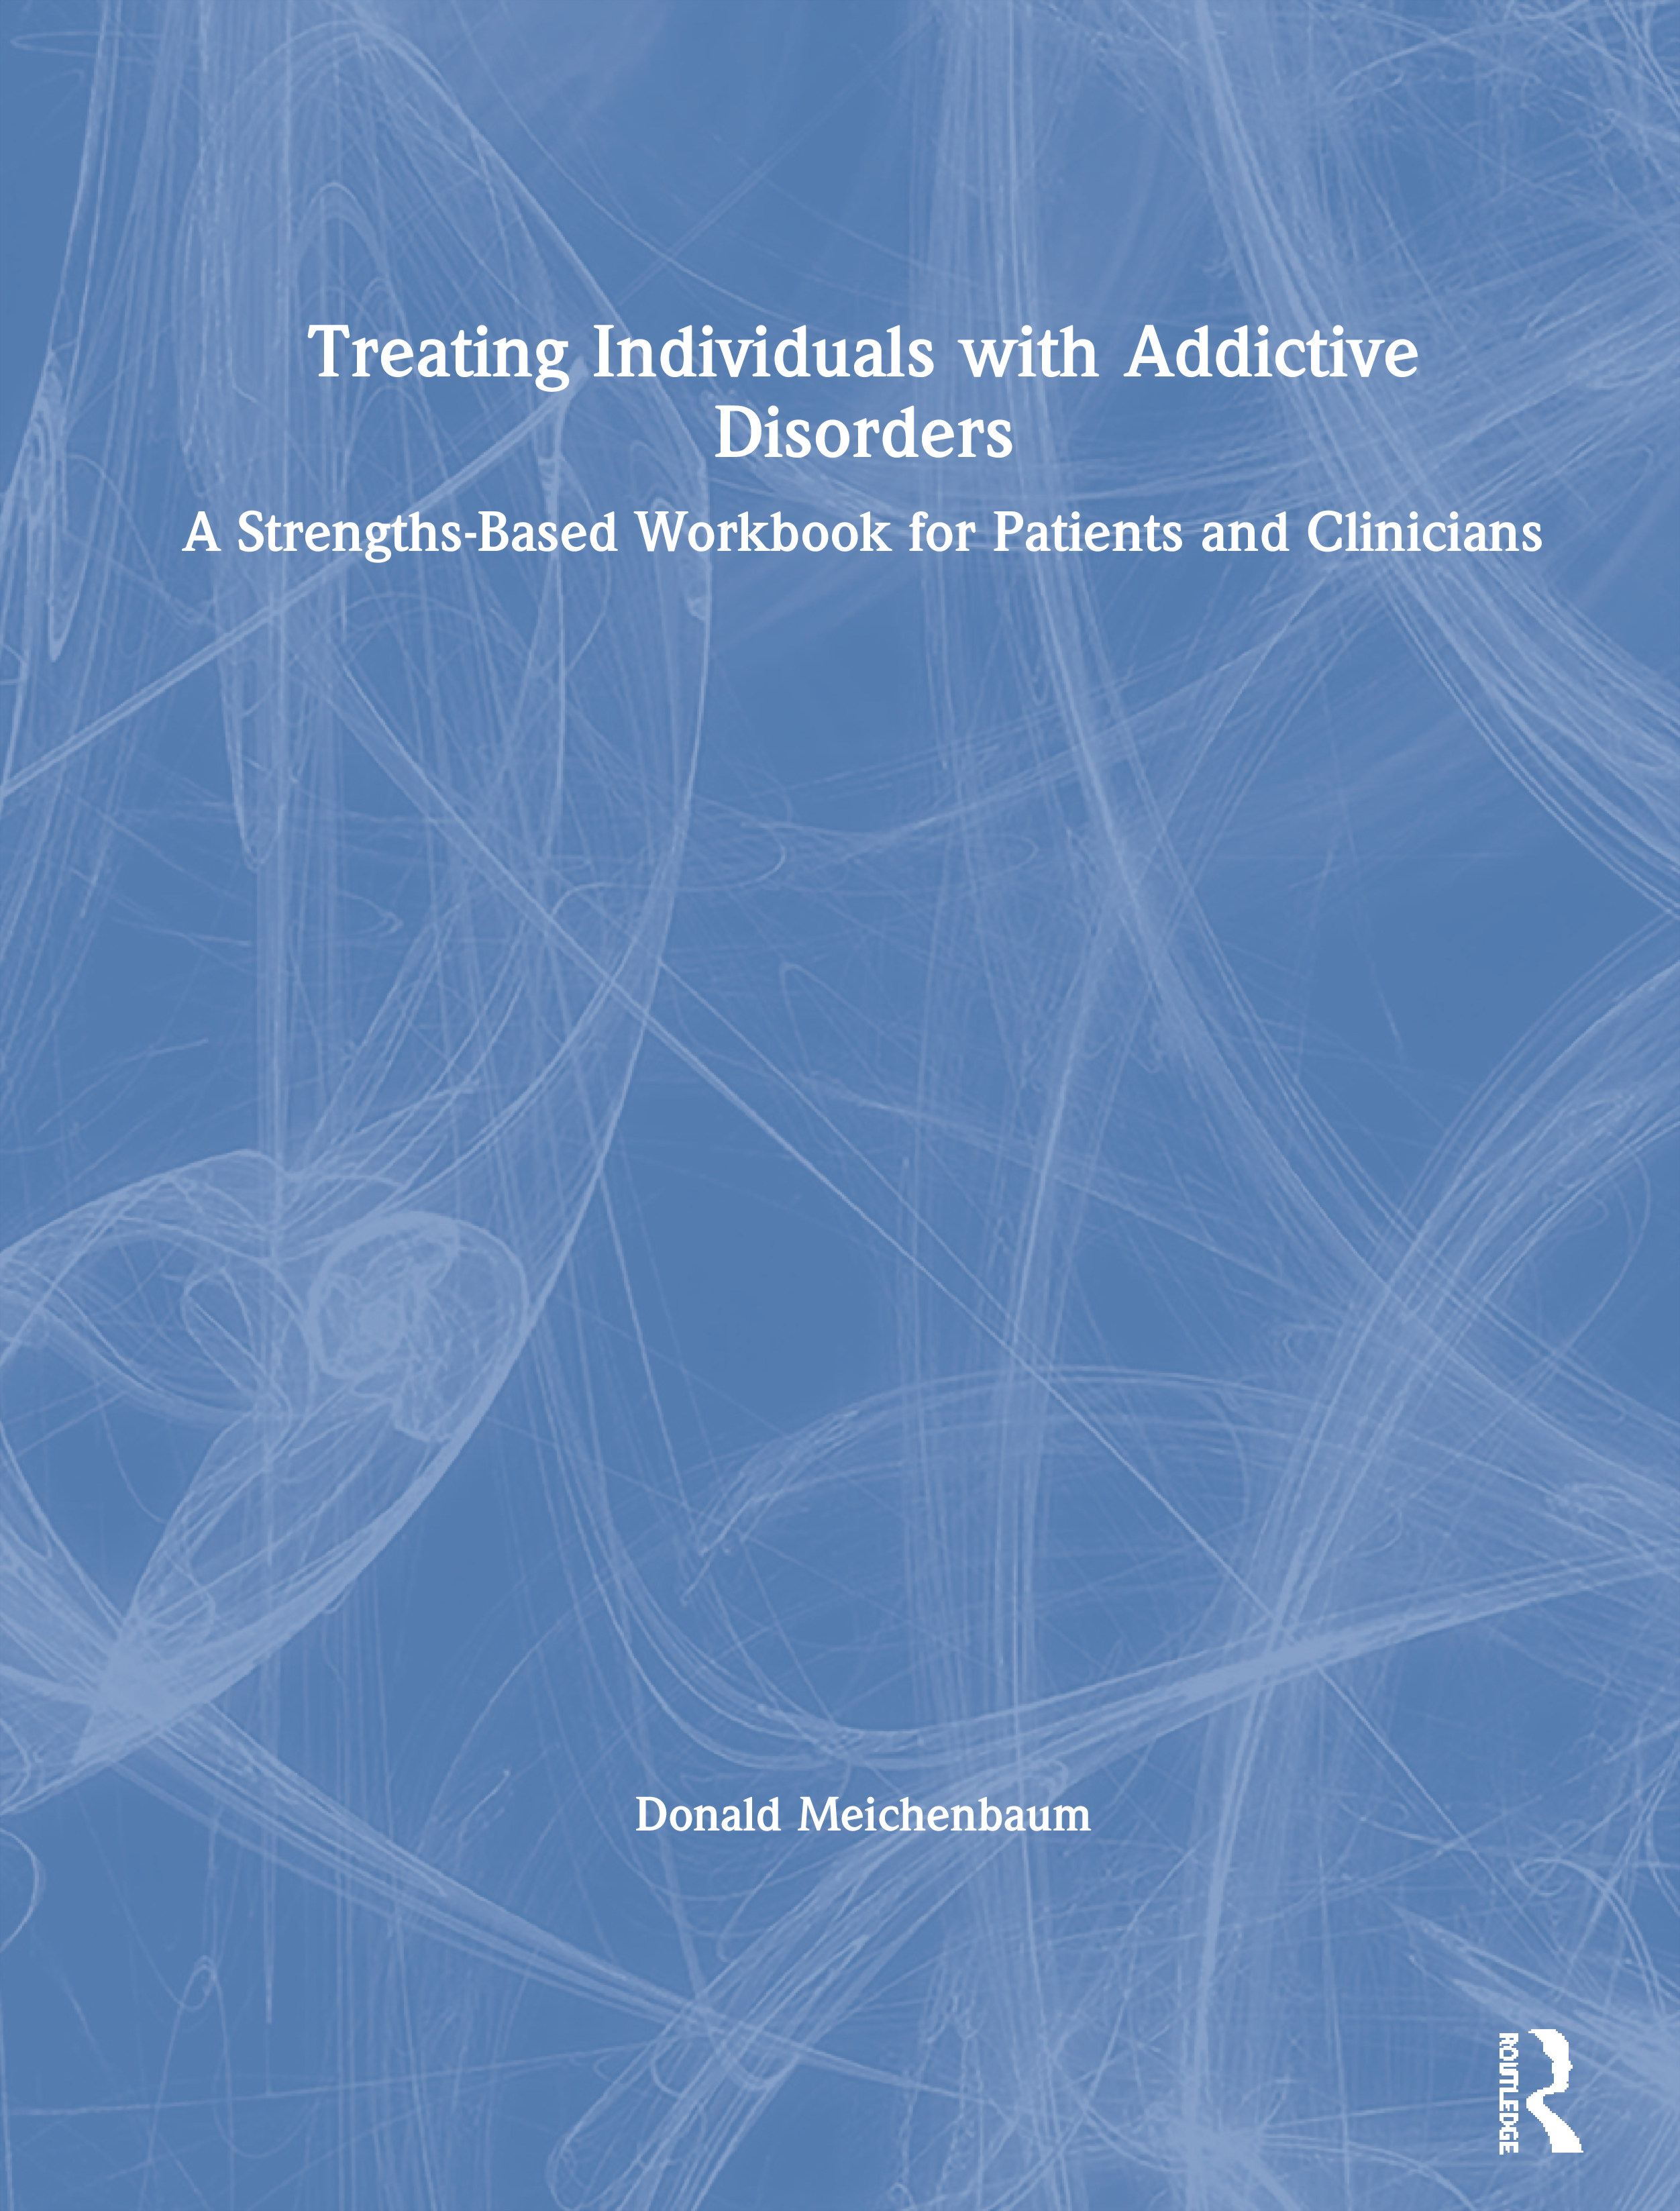 Treating Individuals with Addictive Disorders: A Strengths-Based Workbook for Patients and Clinicians book cover